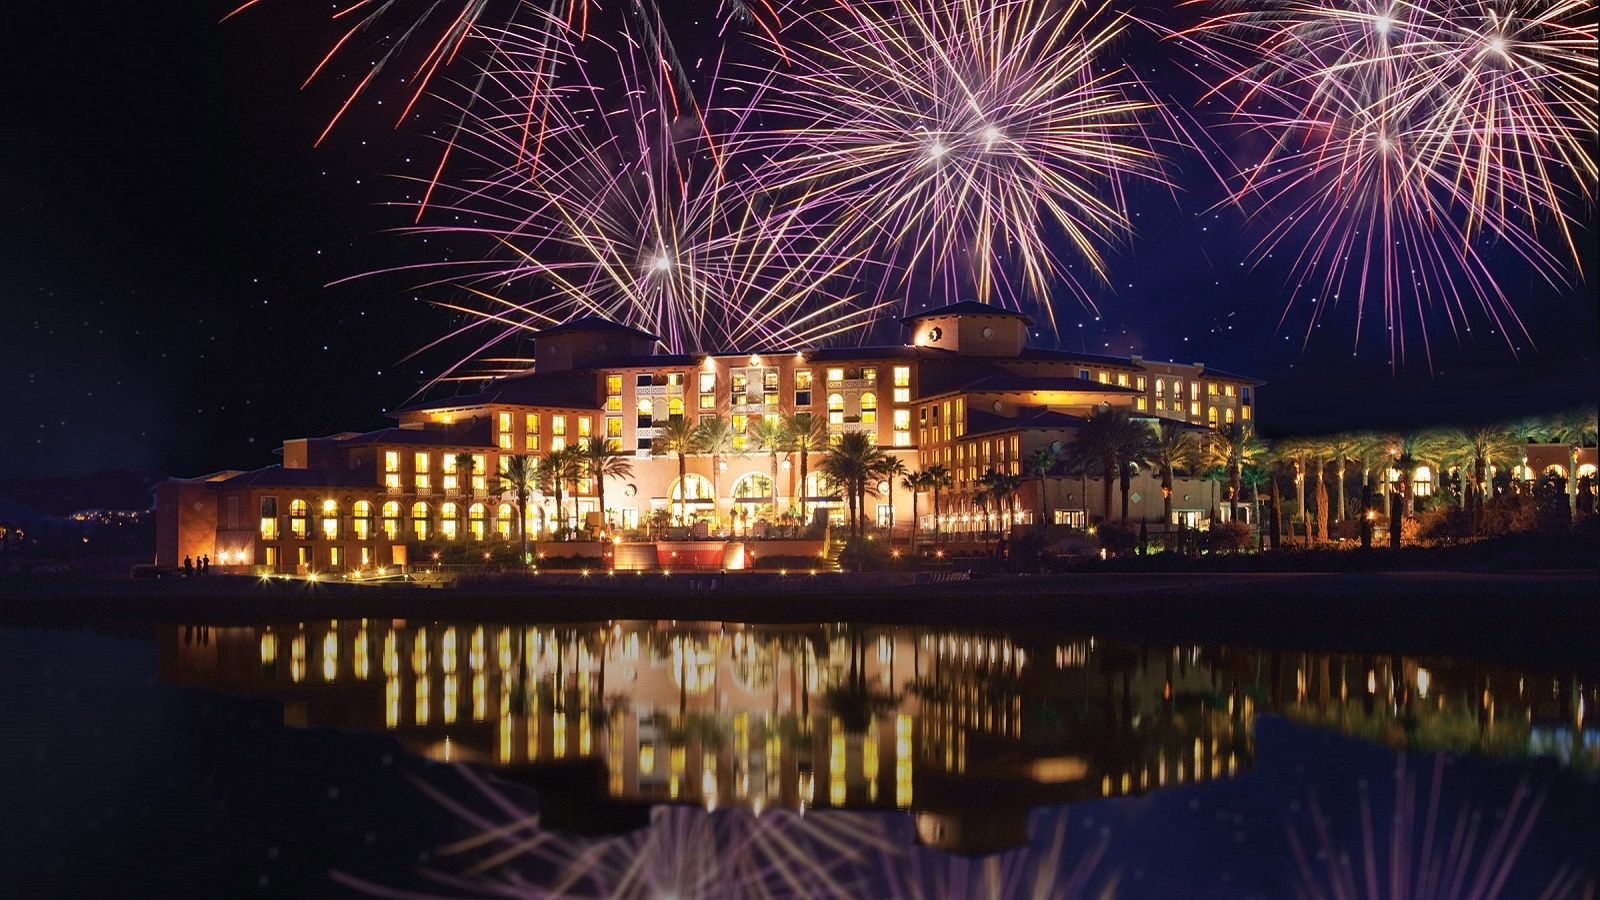 Lake Las Vegas Wedding Venues - Fireworks